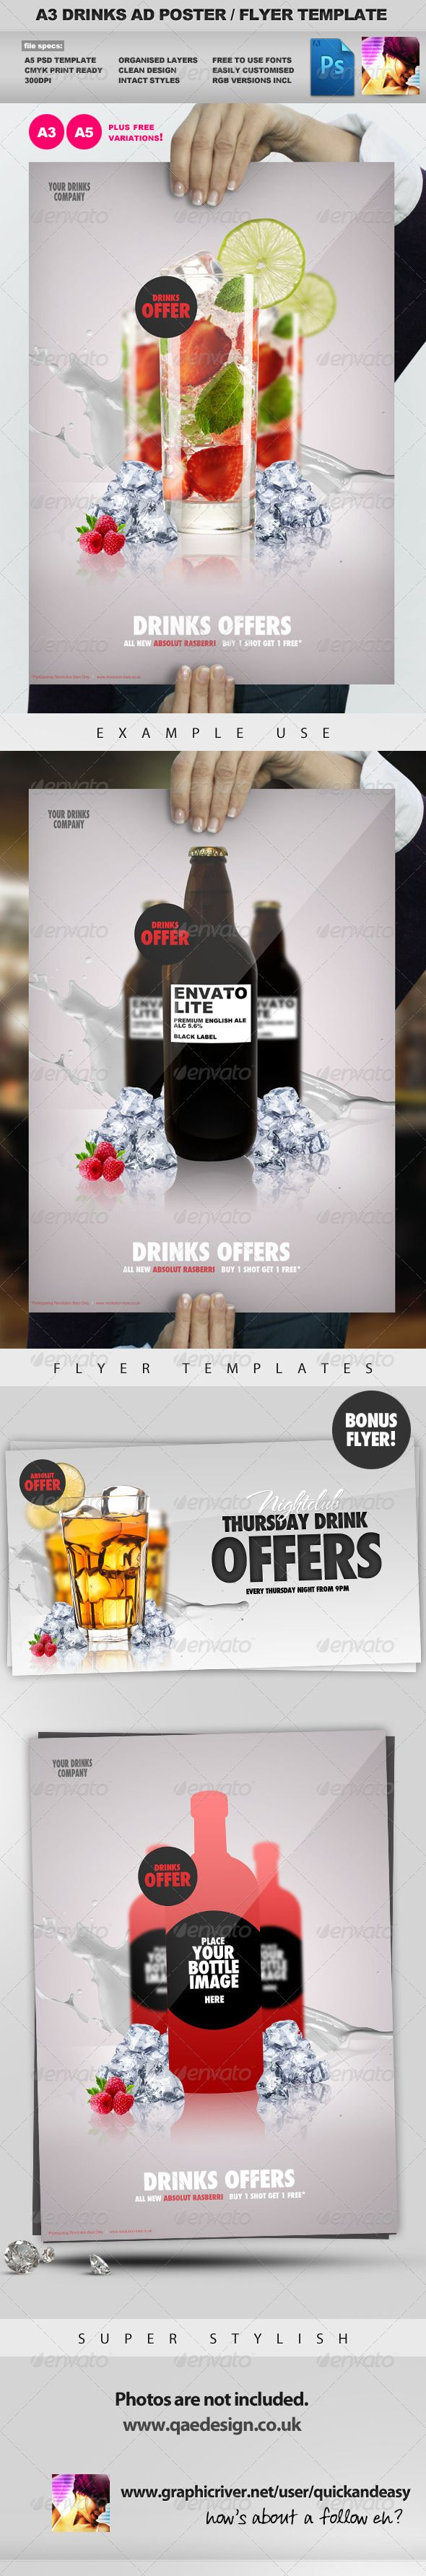 Advertising Poster Templates Extraordinary A3 Drinks Promotion Advertisement Poster Template  Pinterest .